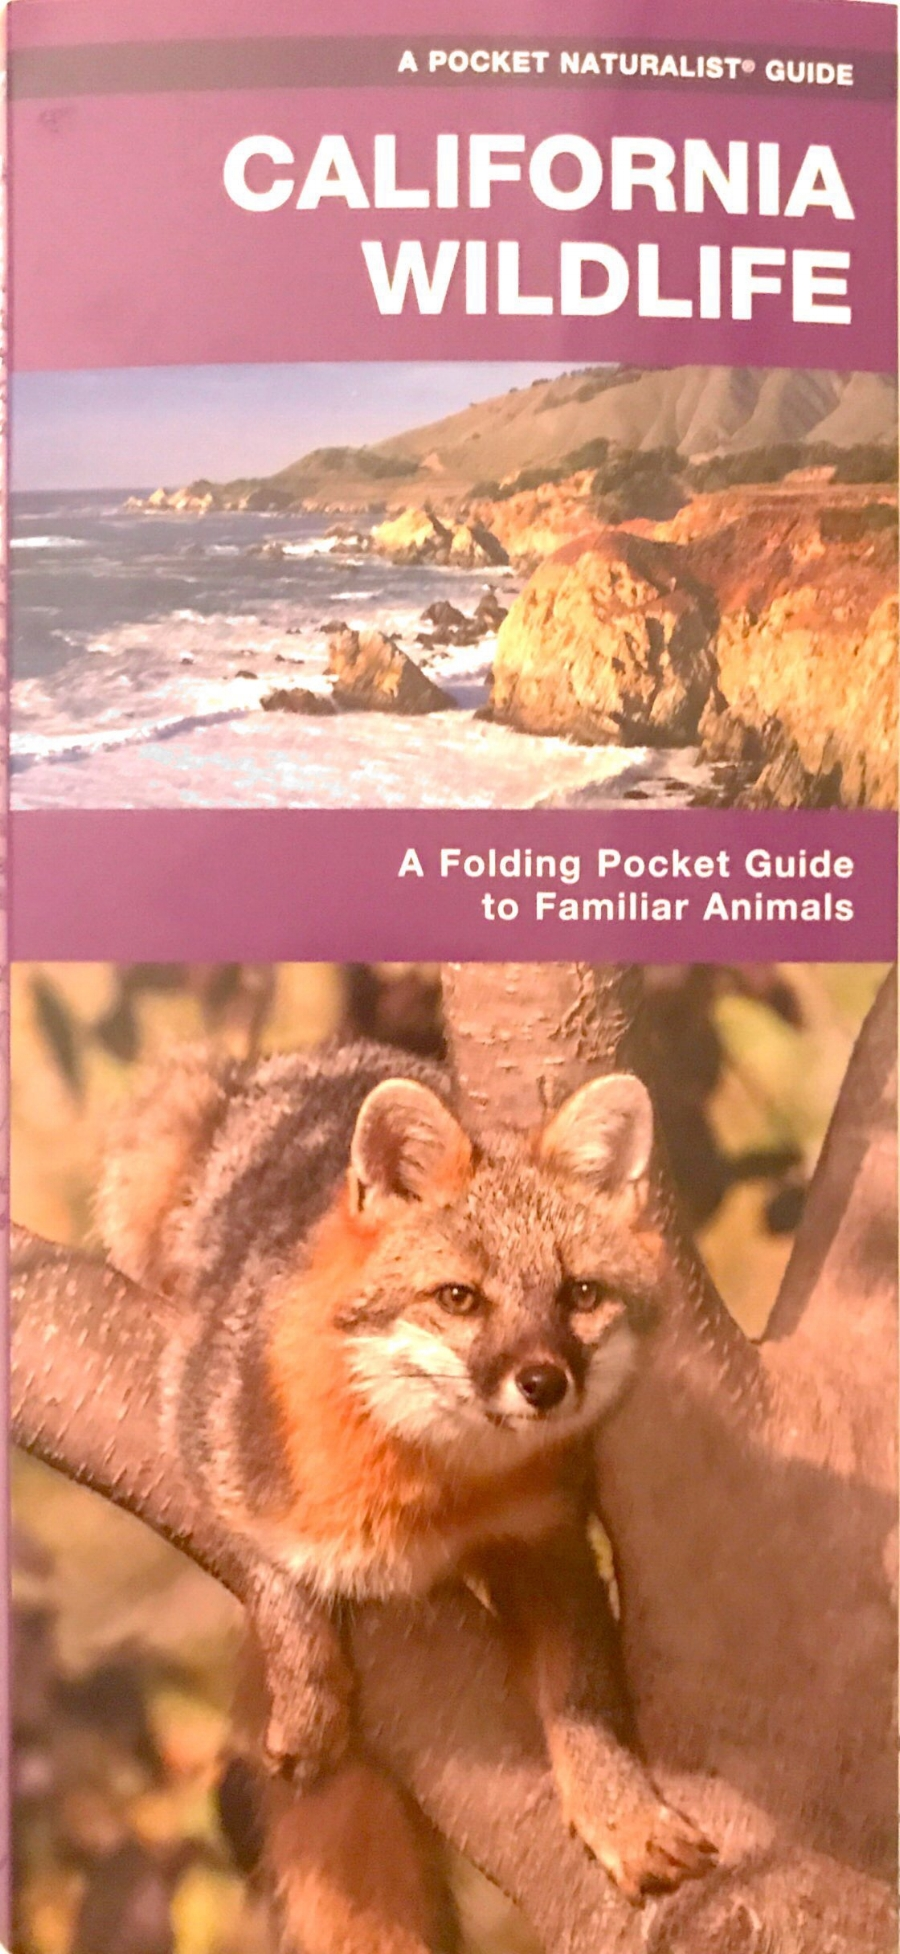 California Wildlife Pamphlet photo.JPG